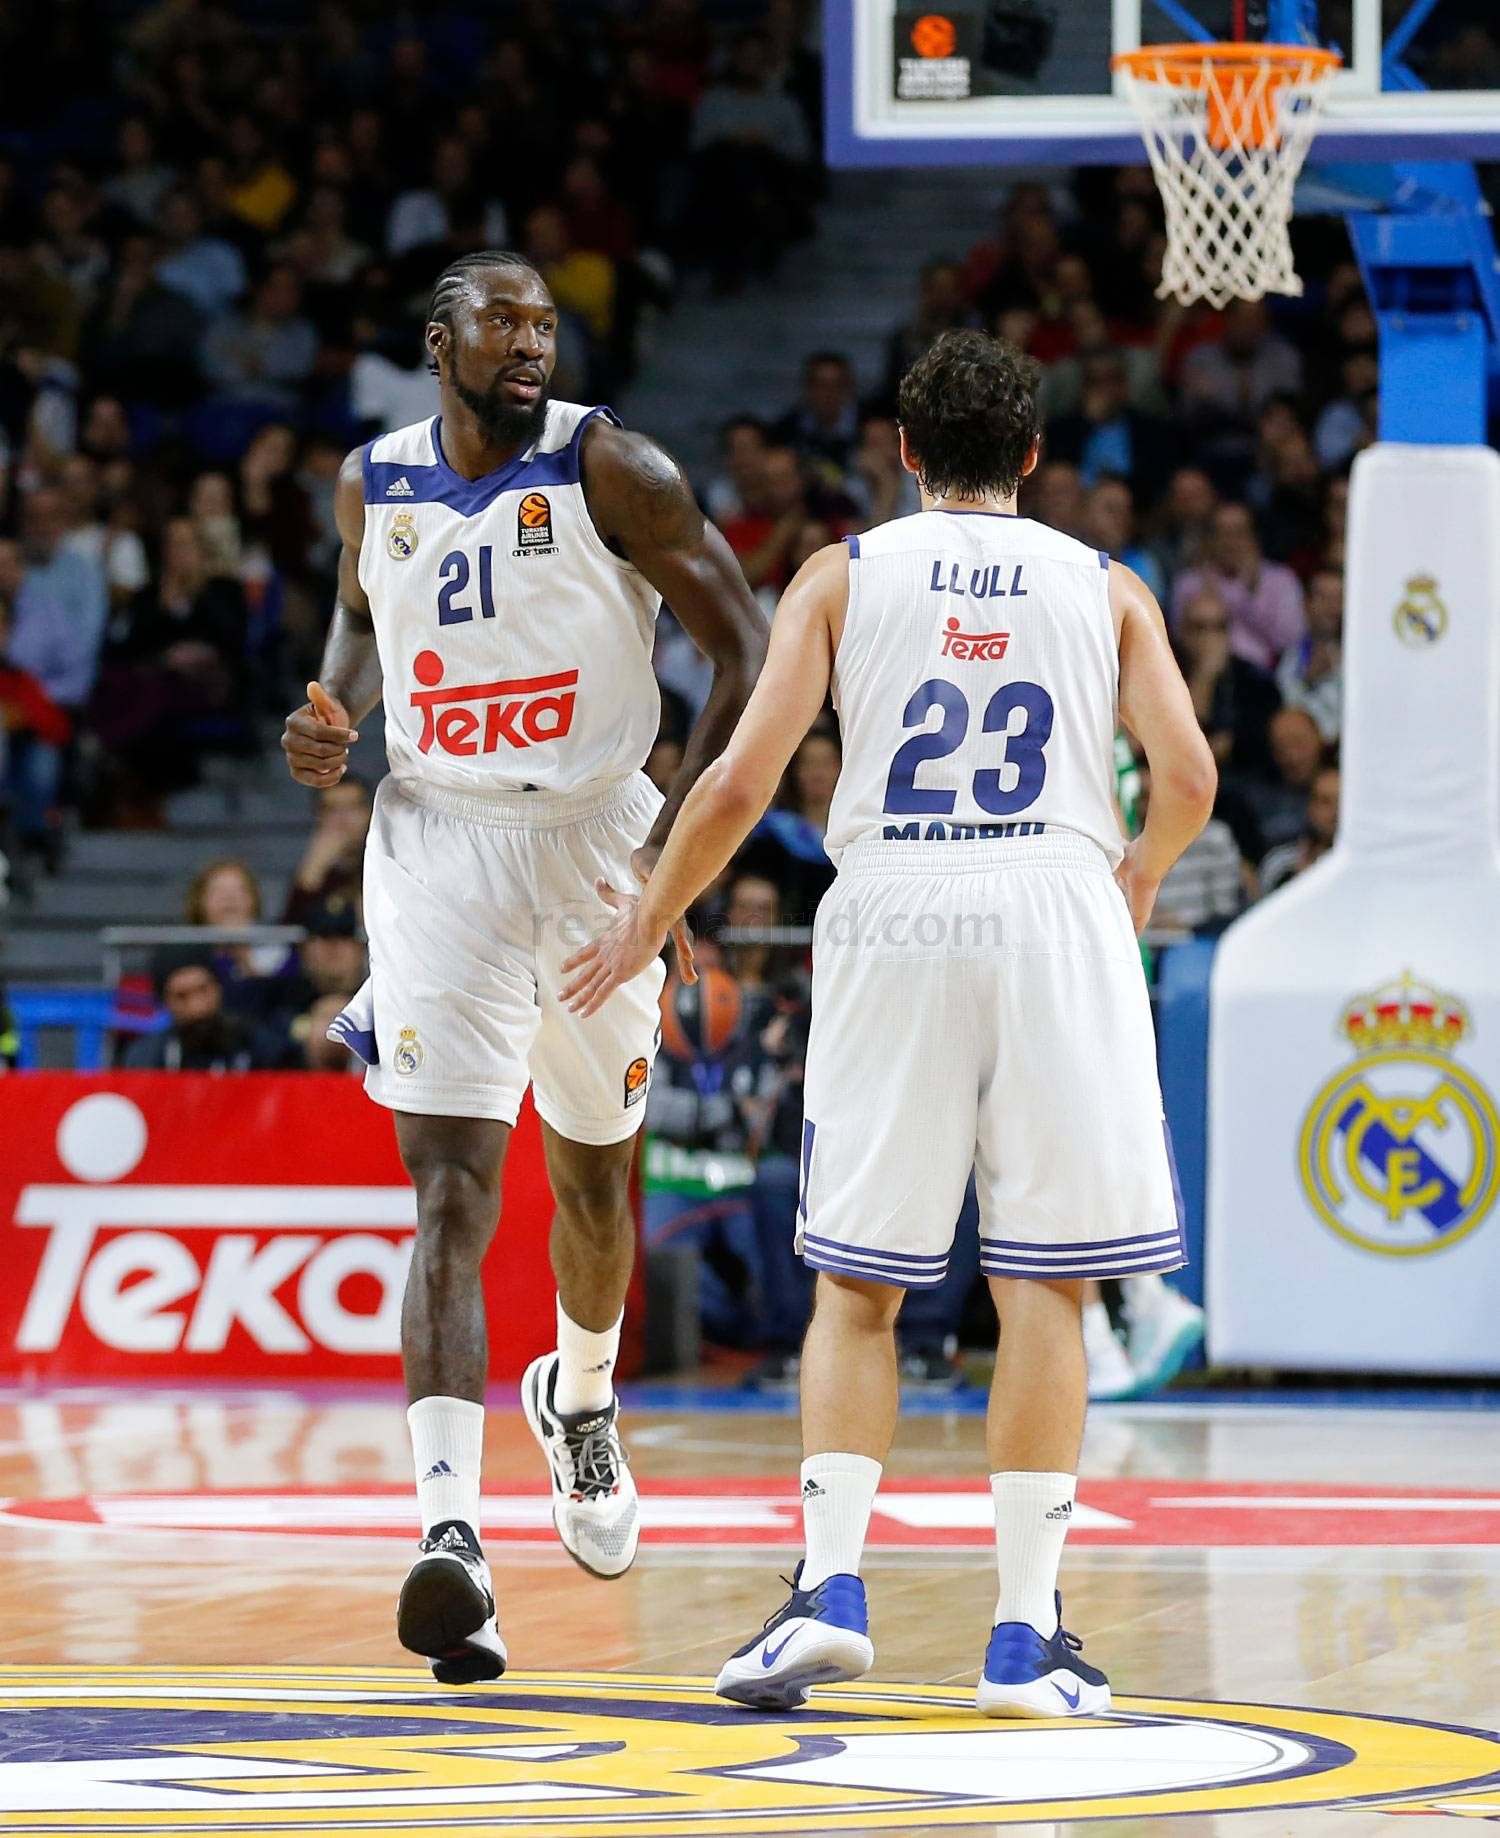 Real Madrid - Real Madrid - Unics Kazan - 24-11-2016